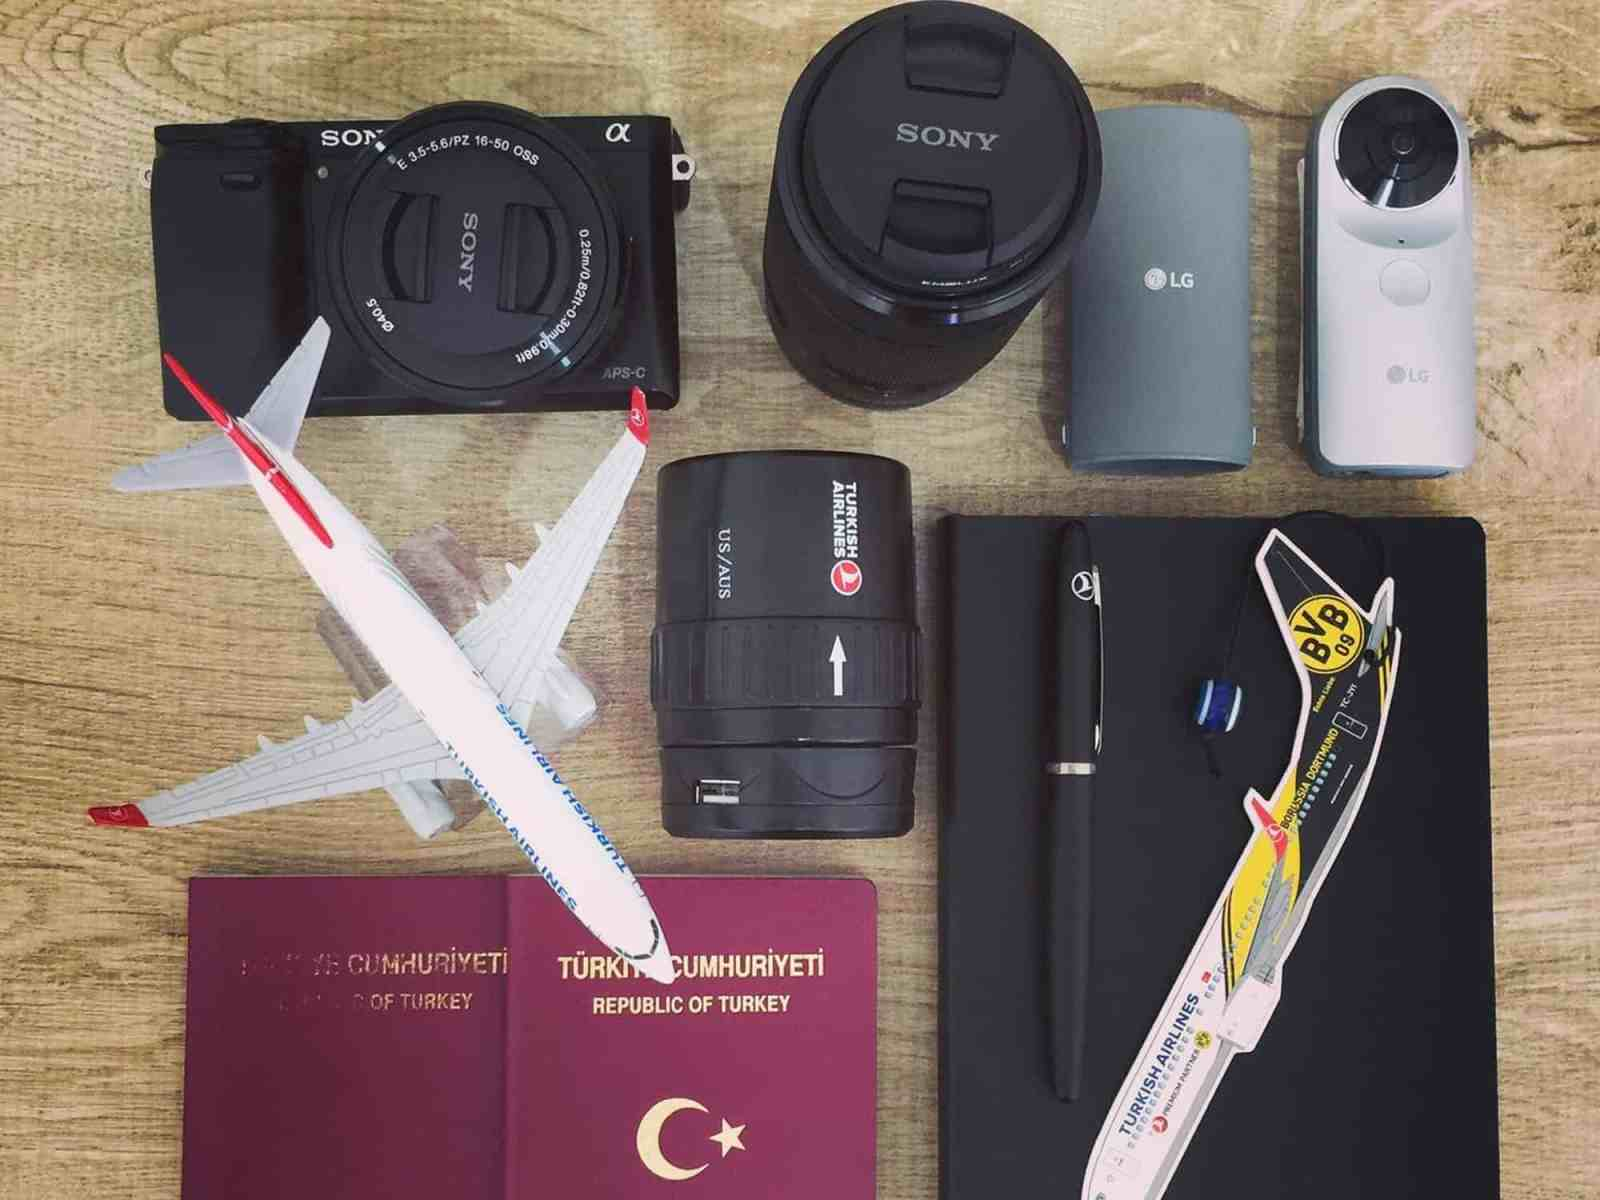 It's important to be prepared for travel! These travel gadgets will make your journey way simplier and help you with all of your needs!